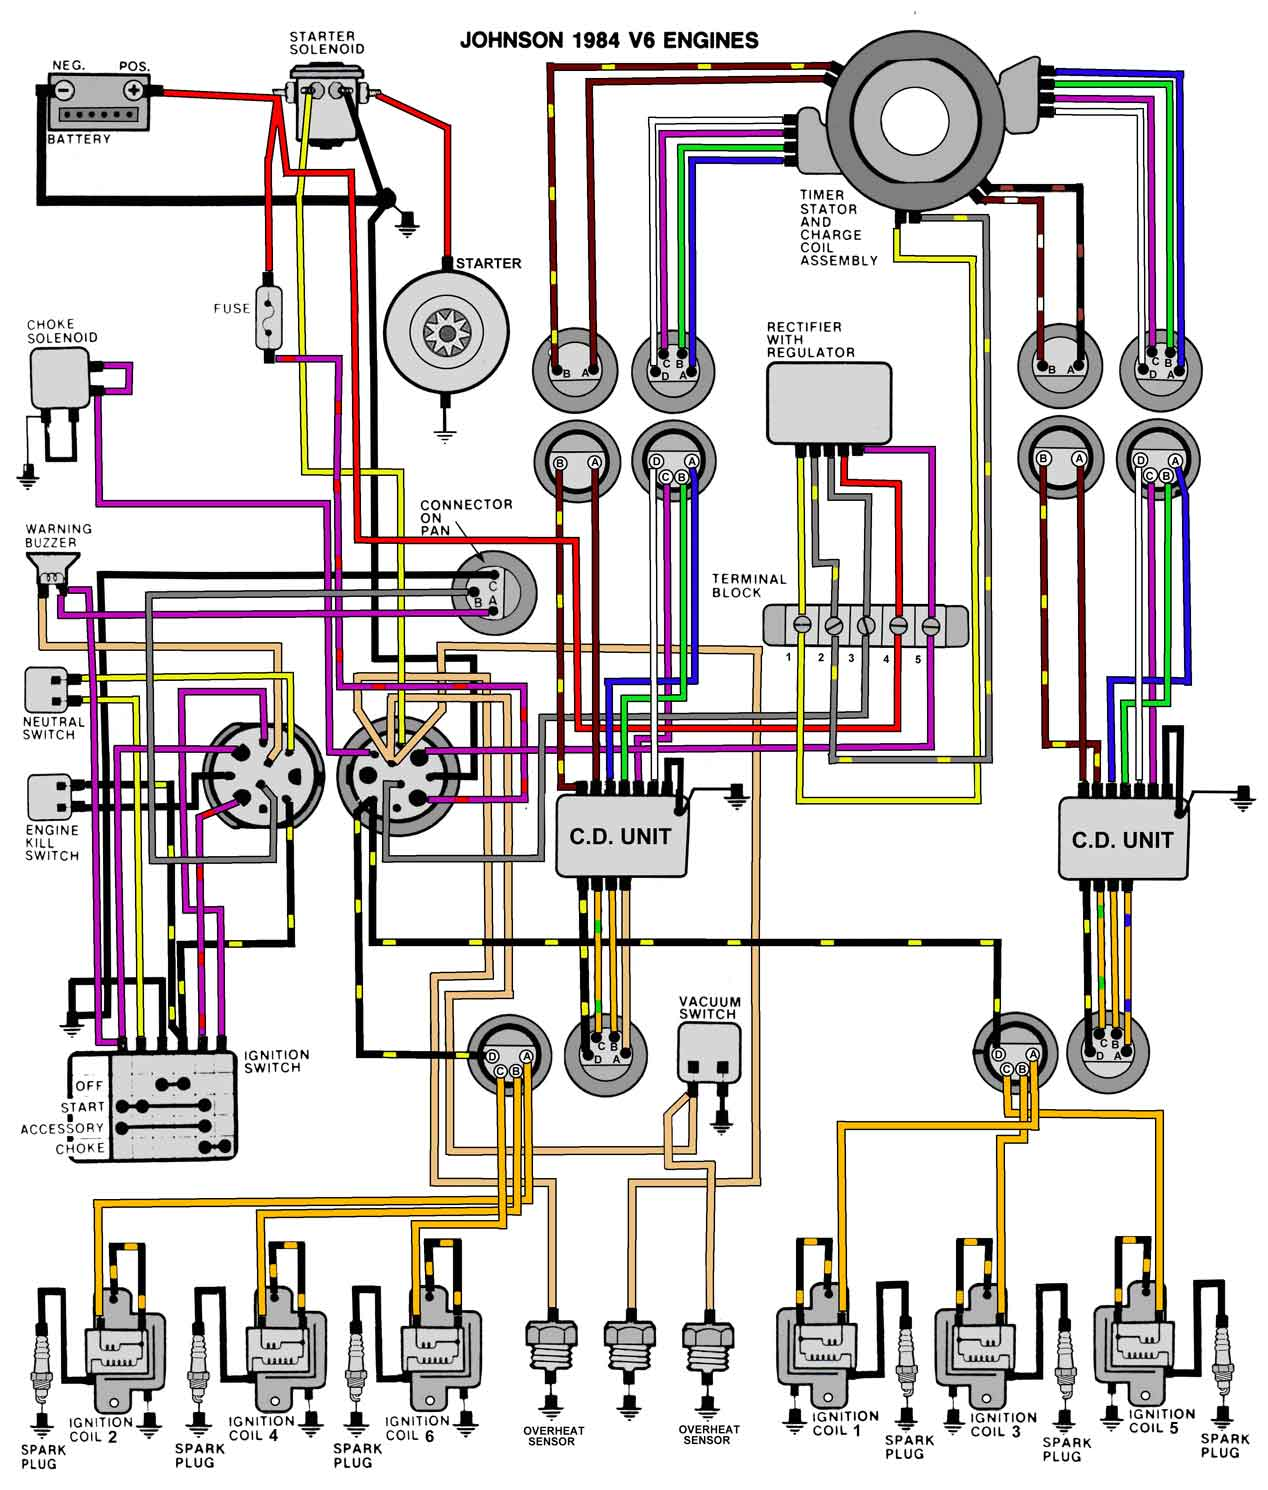 84_V6 mastertech marine evinrude johnson outboard wiring diagrams johnson wiring harness diagram at n-0.co